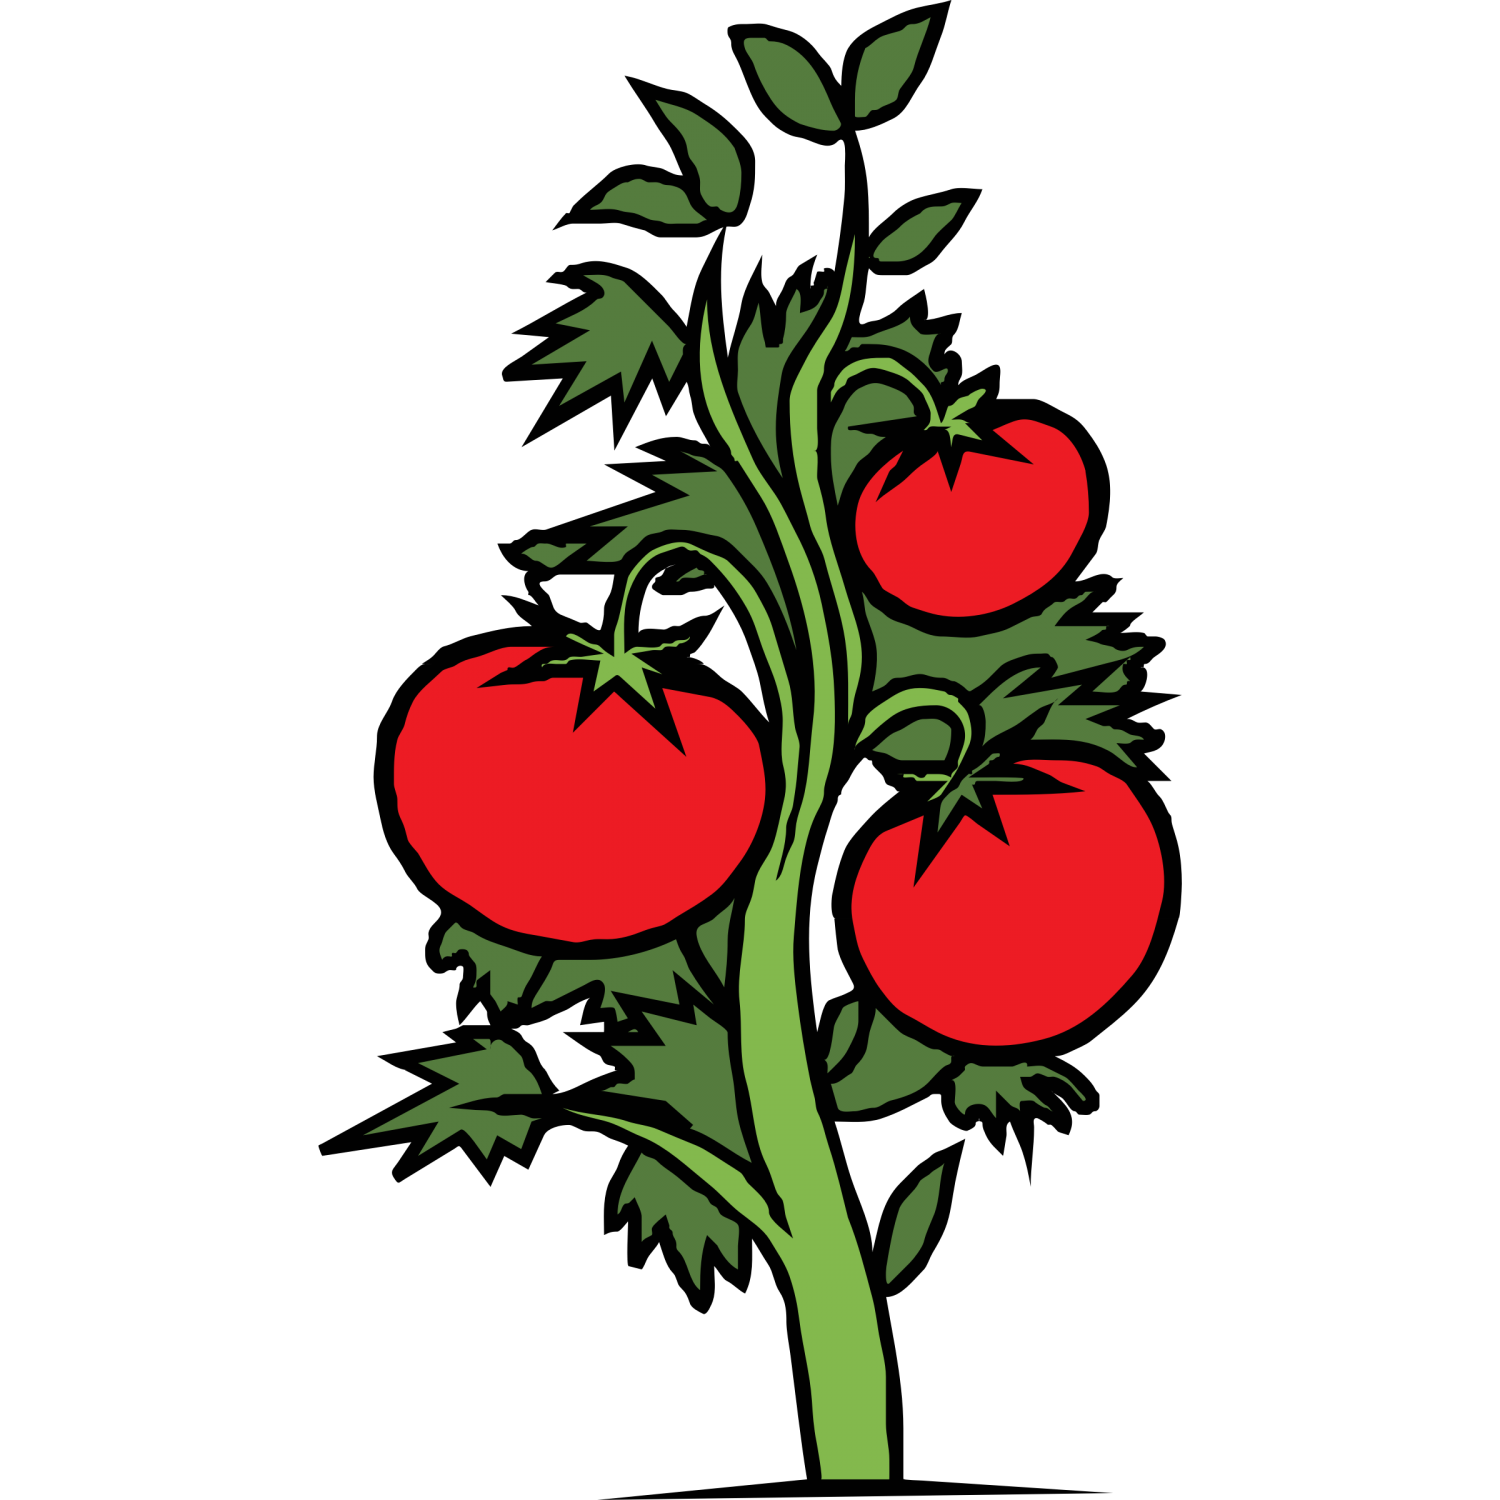 Tomato plant drawing at. Cycle clipart tree growth